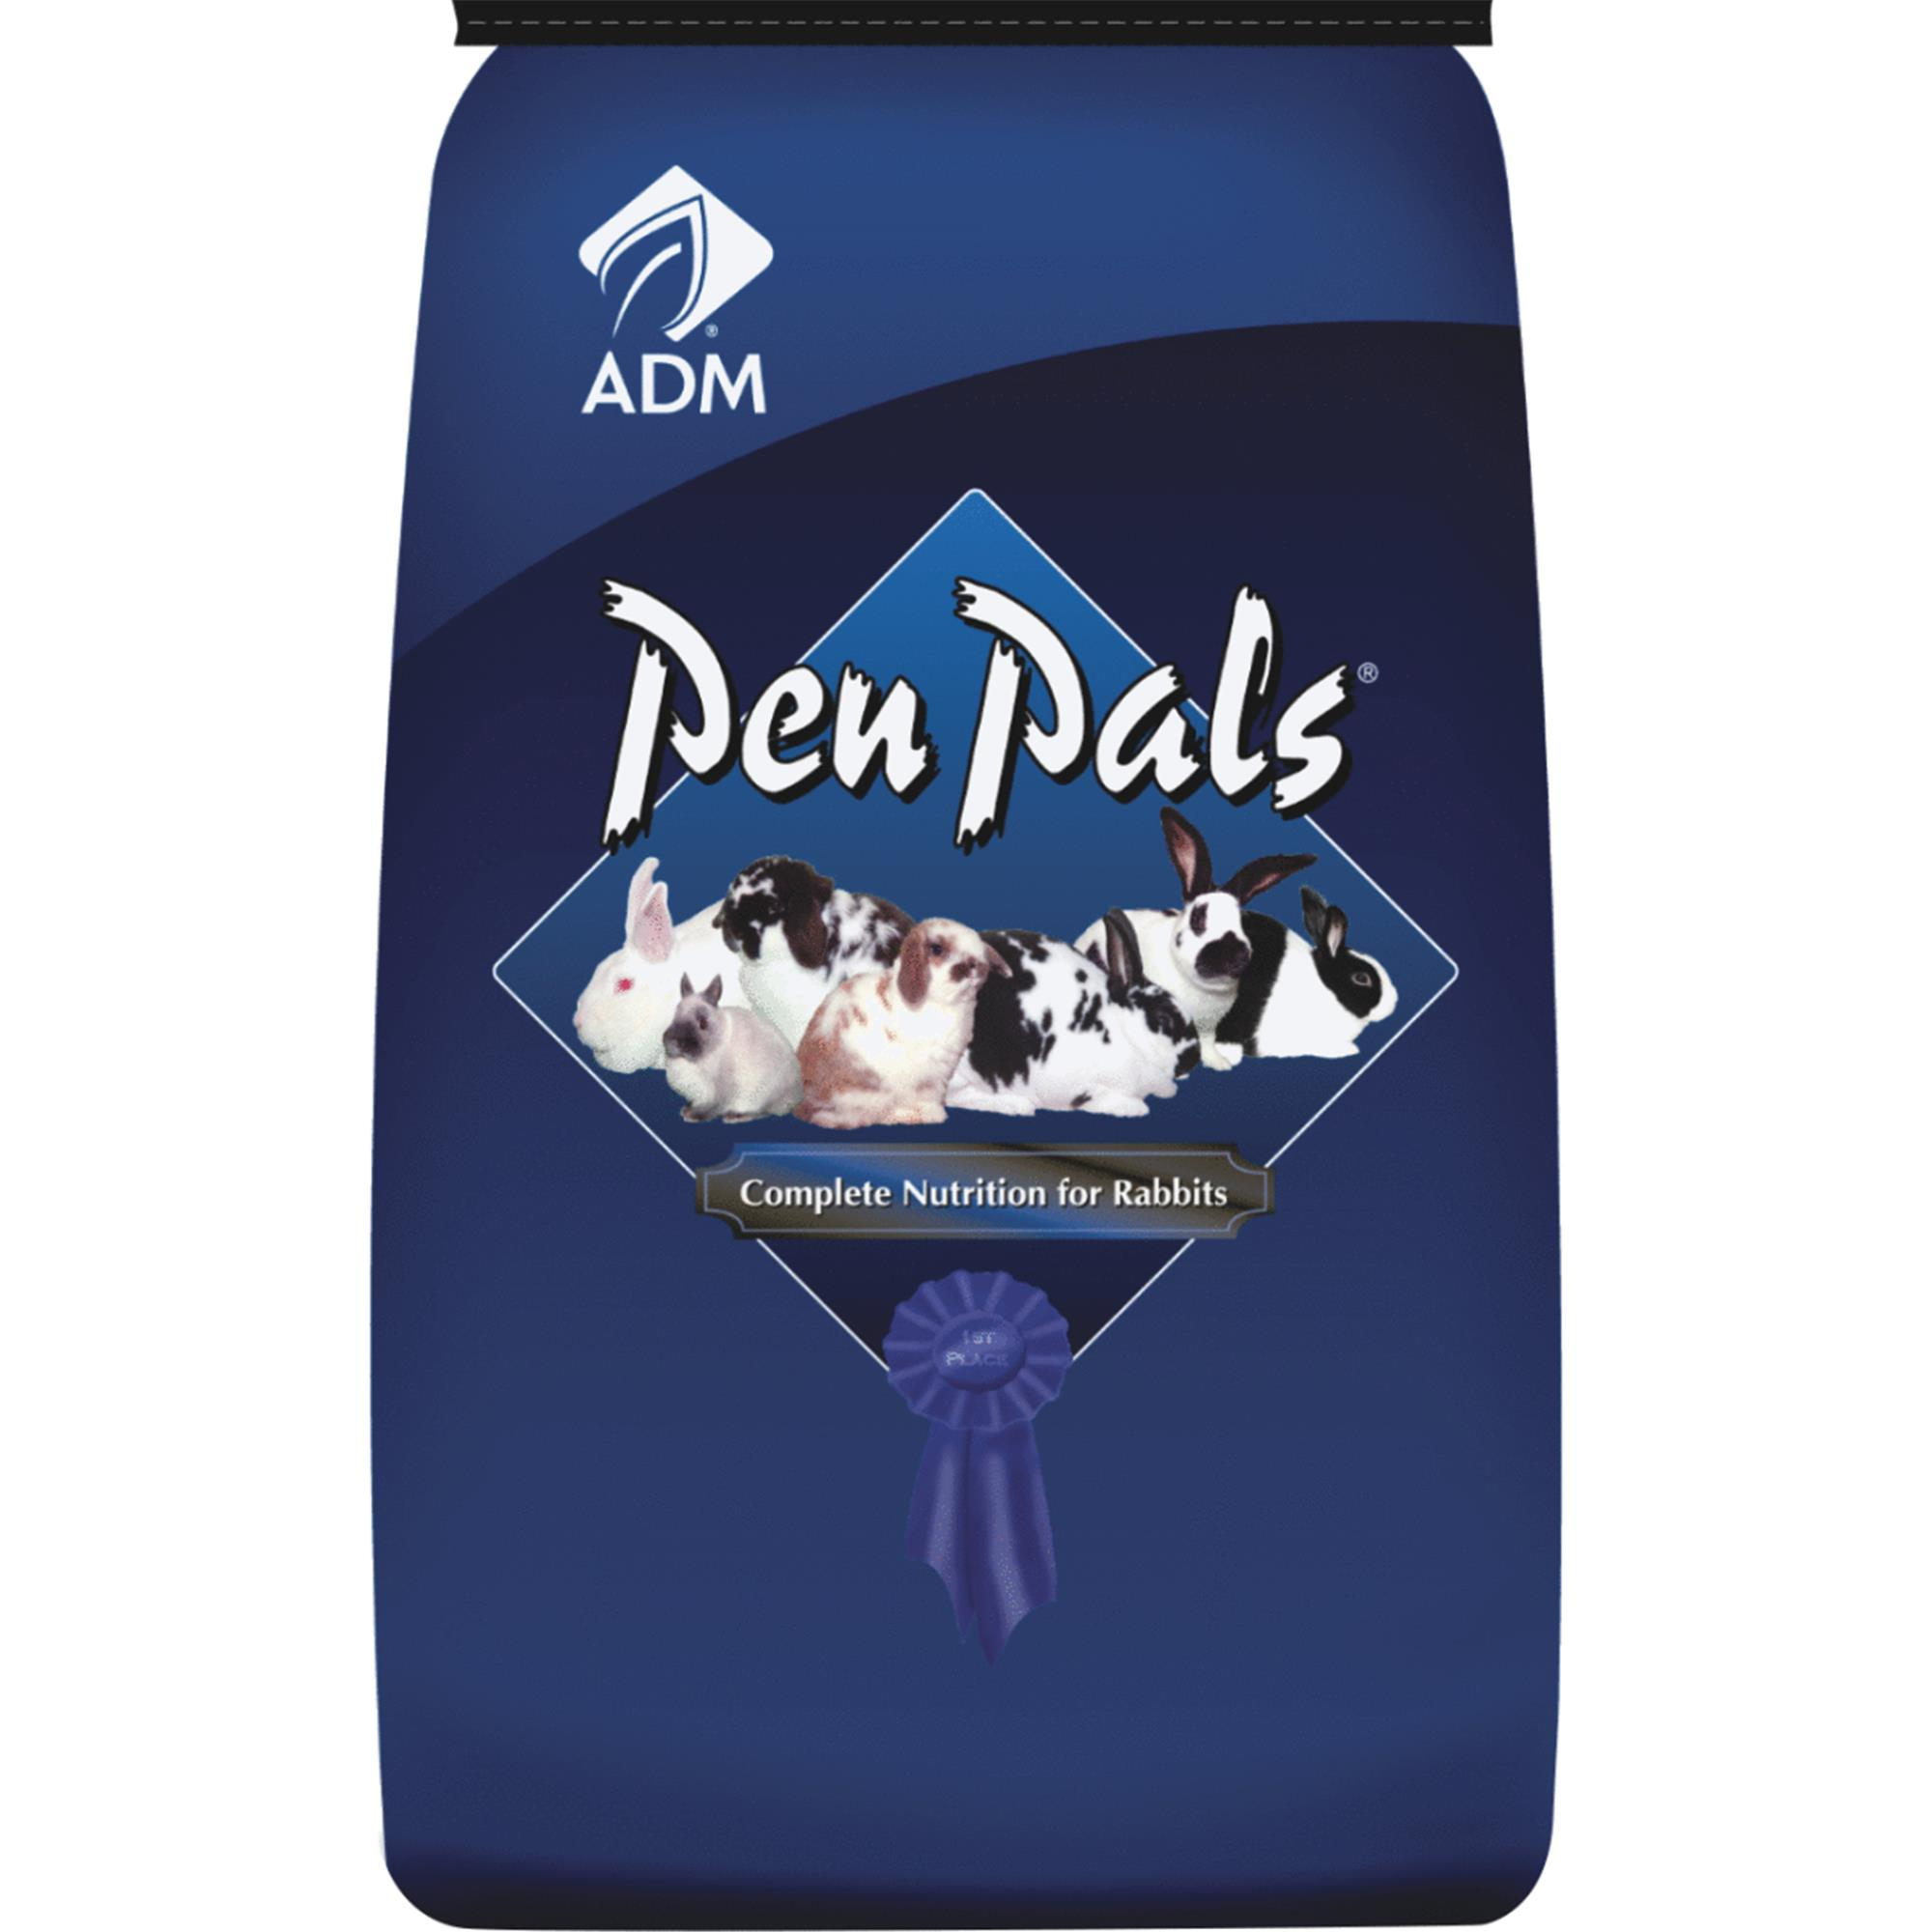 ADM Pen Pals Rabbit Food by ADM ANIMAL NUTRITION